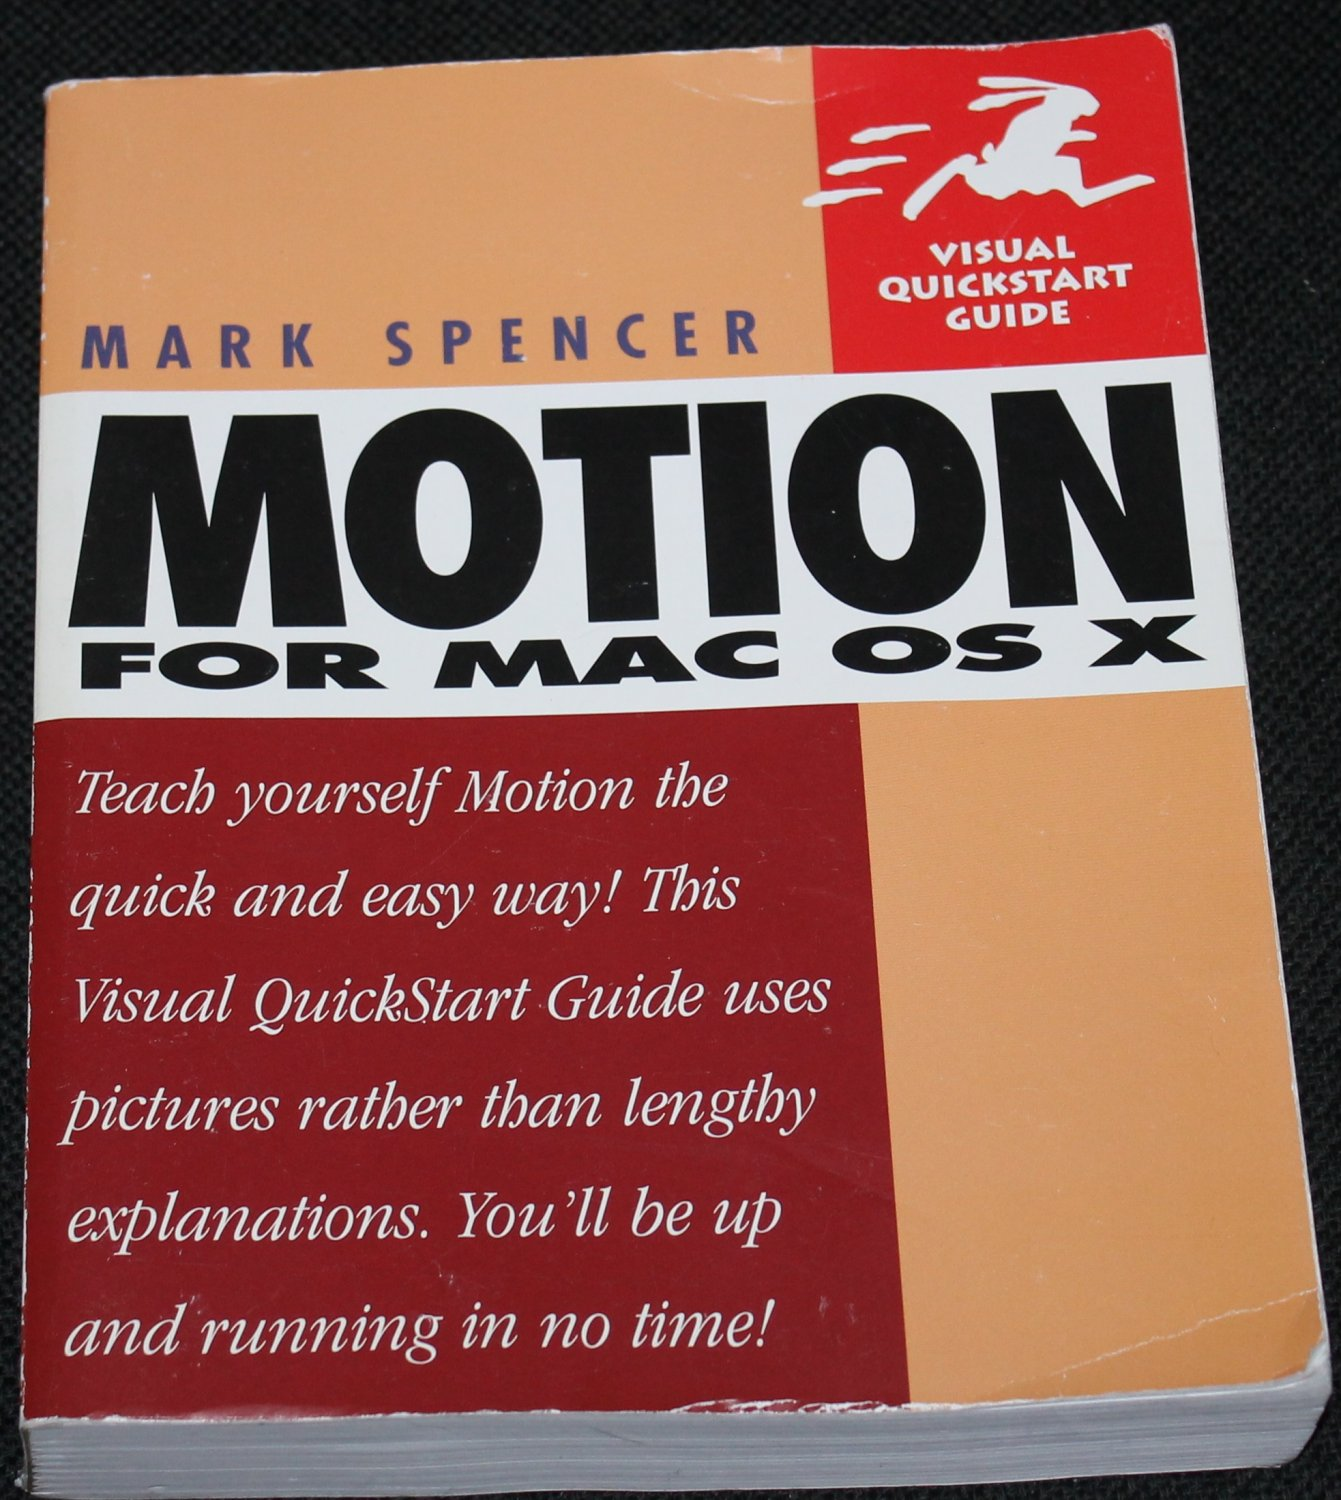 Motion for Mac OS X by Mark Spencer - computer book